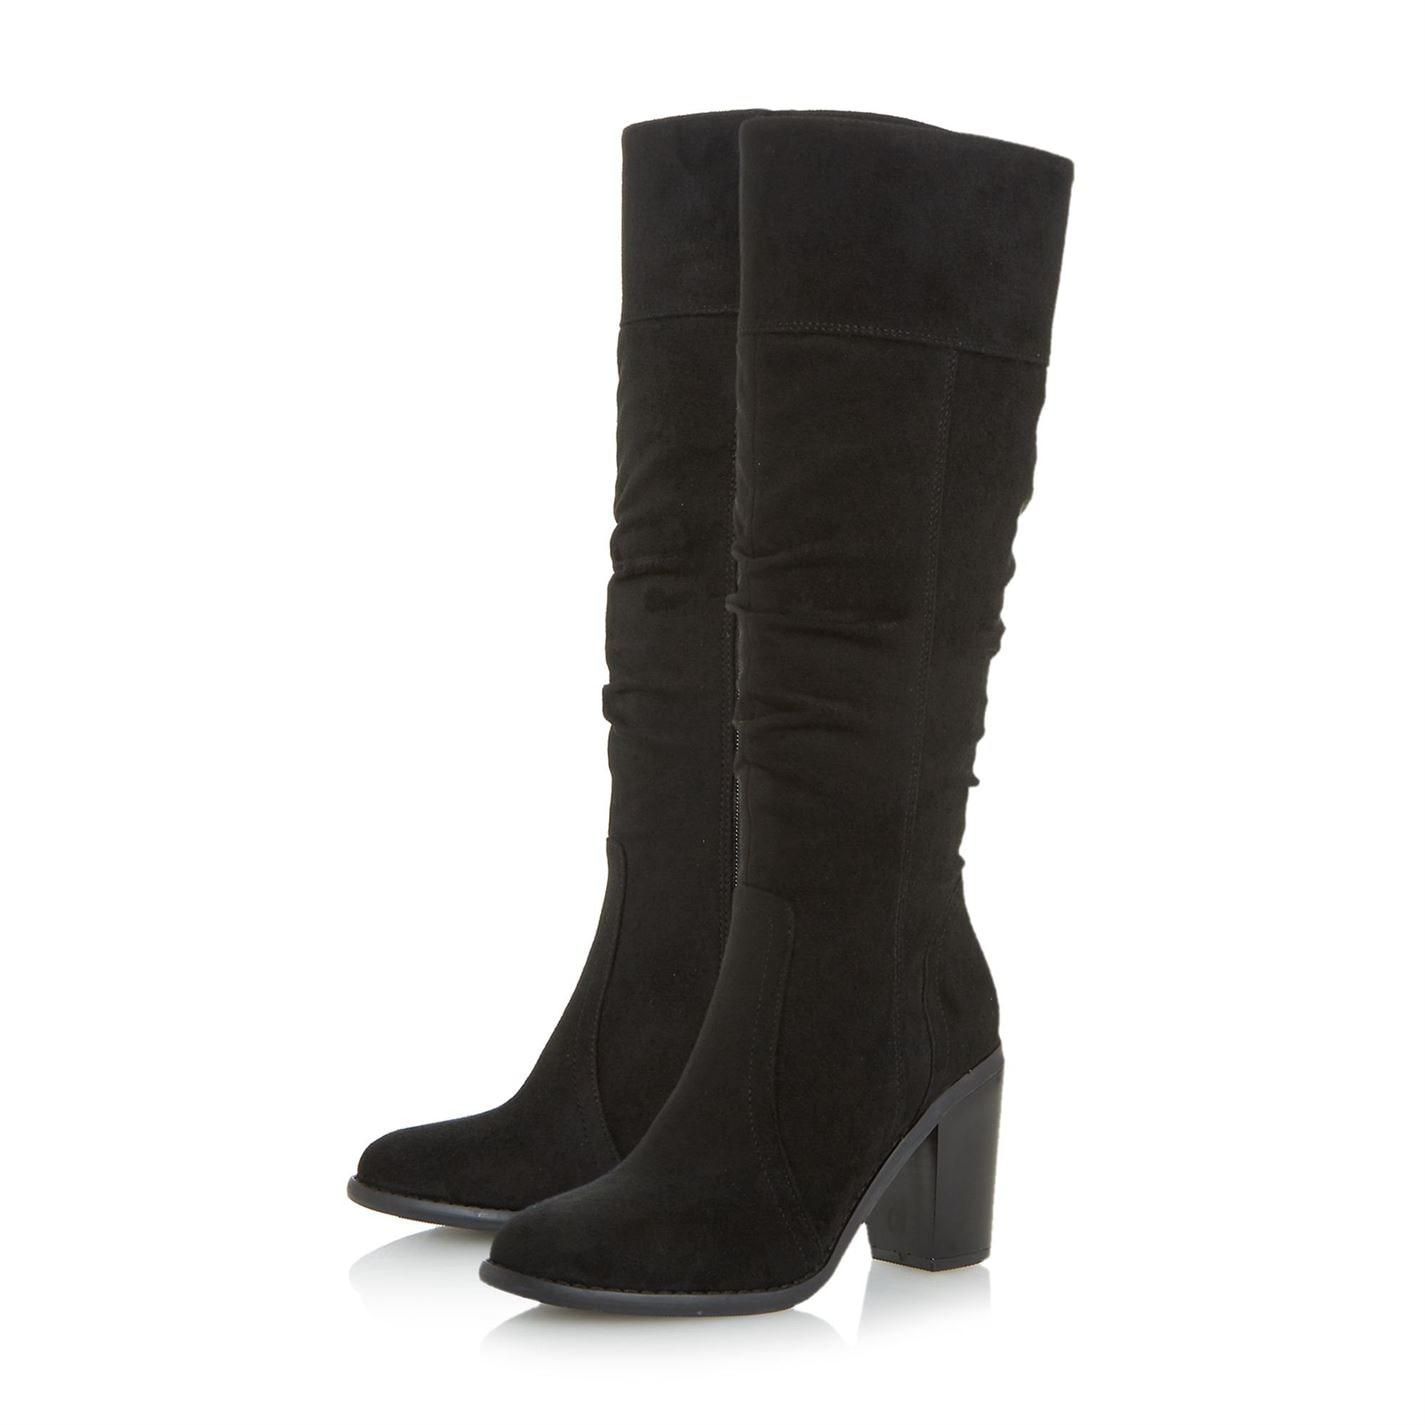 Dune Tamika Rouched Knee High Boots in Black